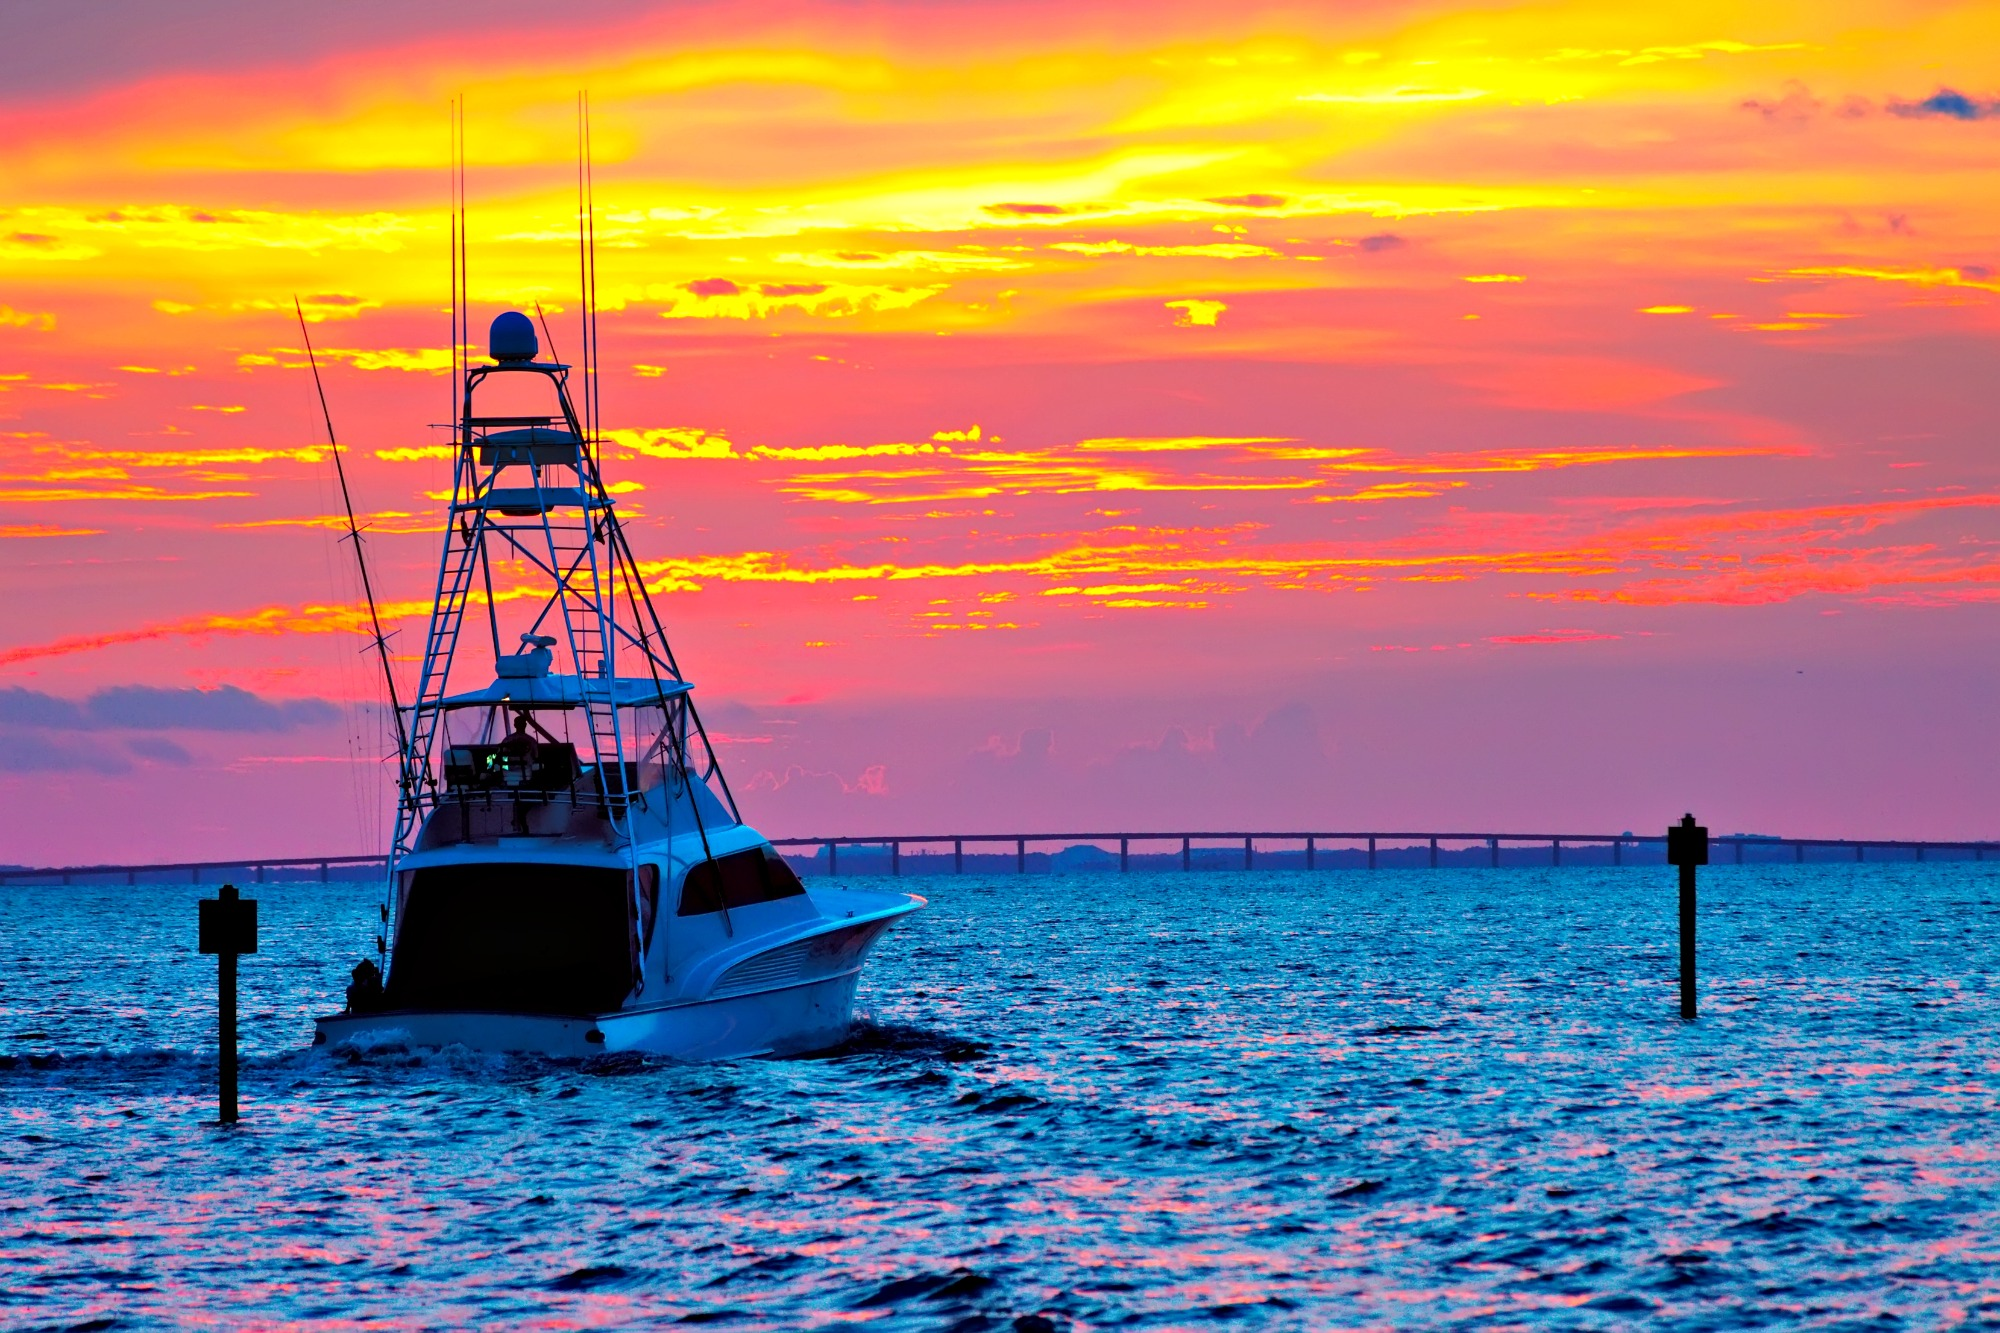 Fishing boat at sunset for Gulf Coast fishing blog